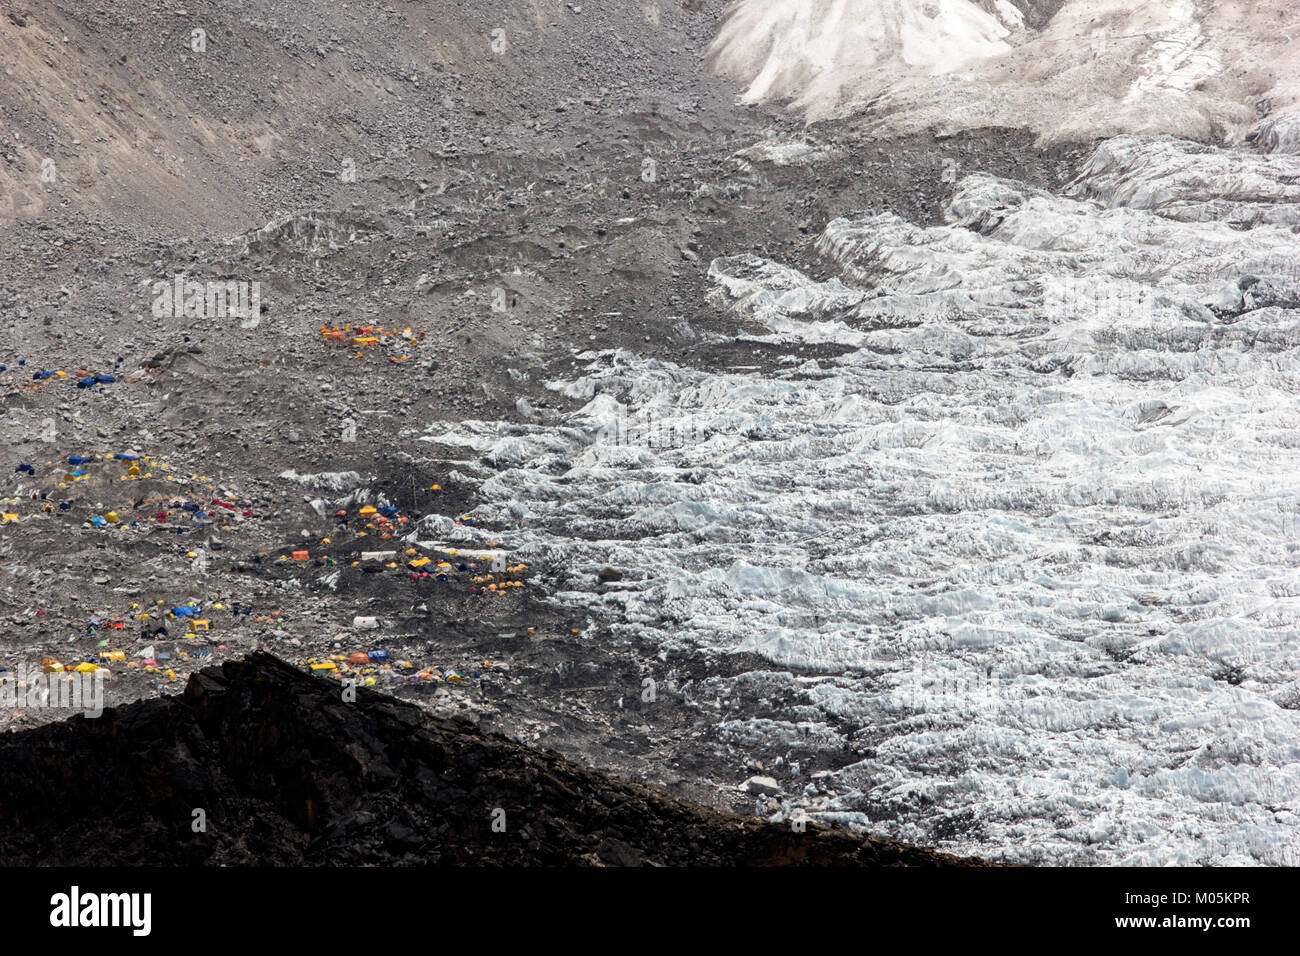 Everest base camp in Everest region Nepal. - Stock Image